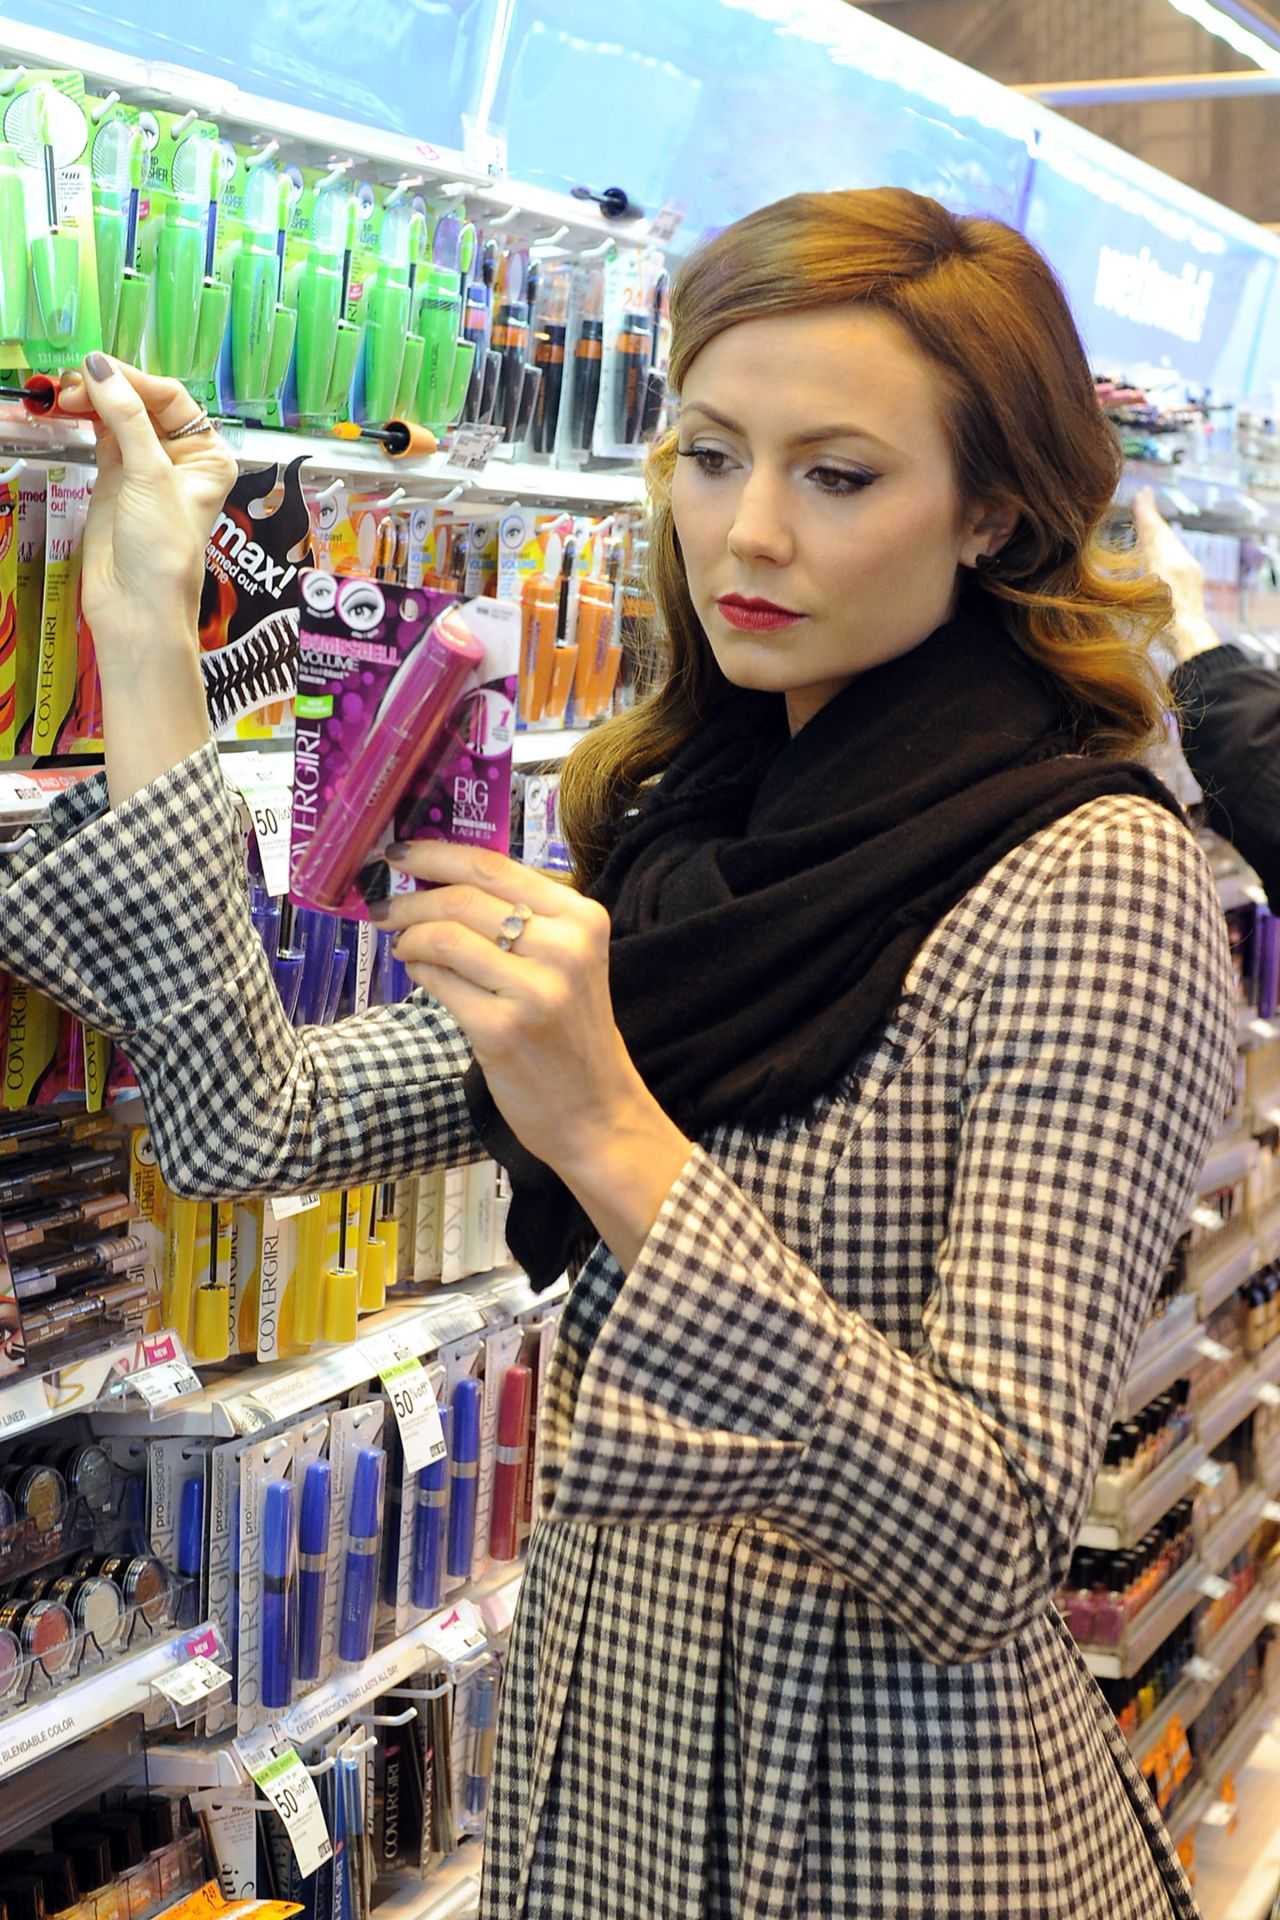 Stacy Keibler - Duane Reade Drug Store in Soho - New York City, Feb. 2014